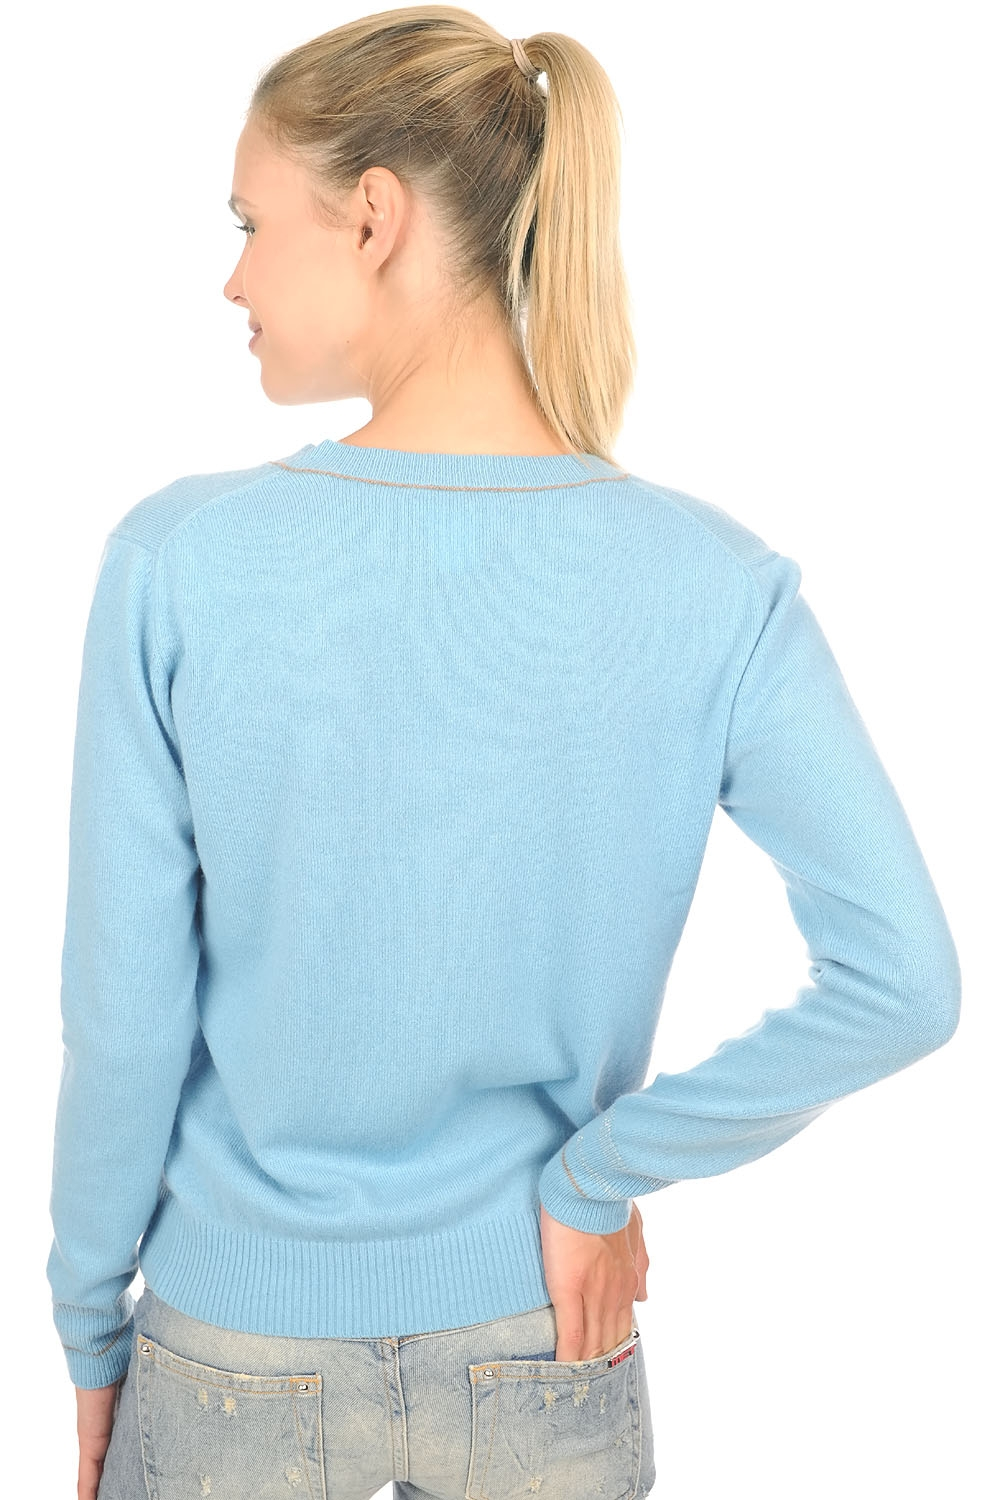 cashmere ladies v necks emerson teal blue natural brown m